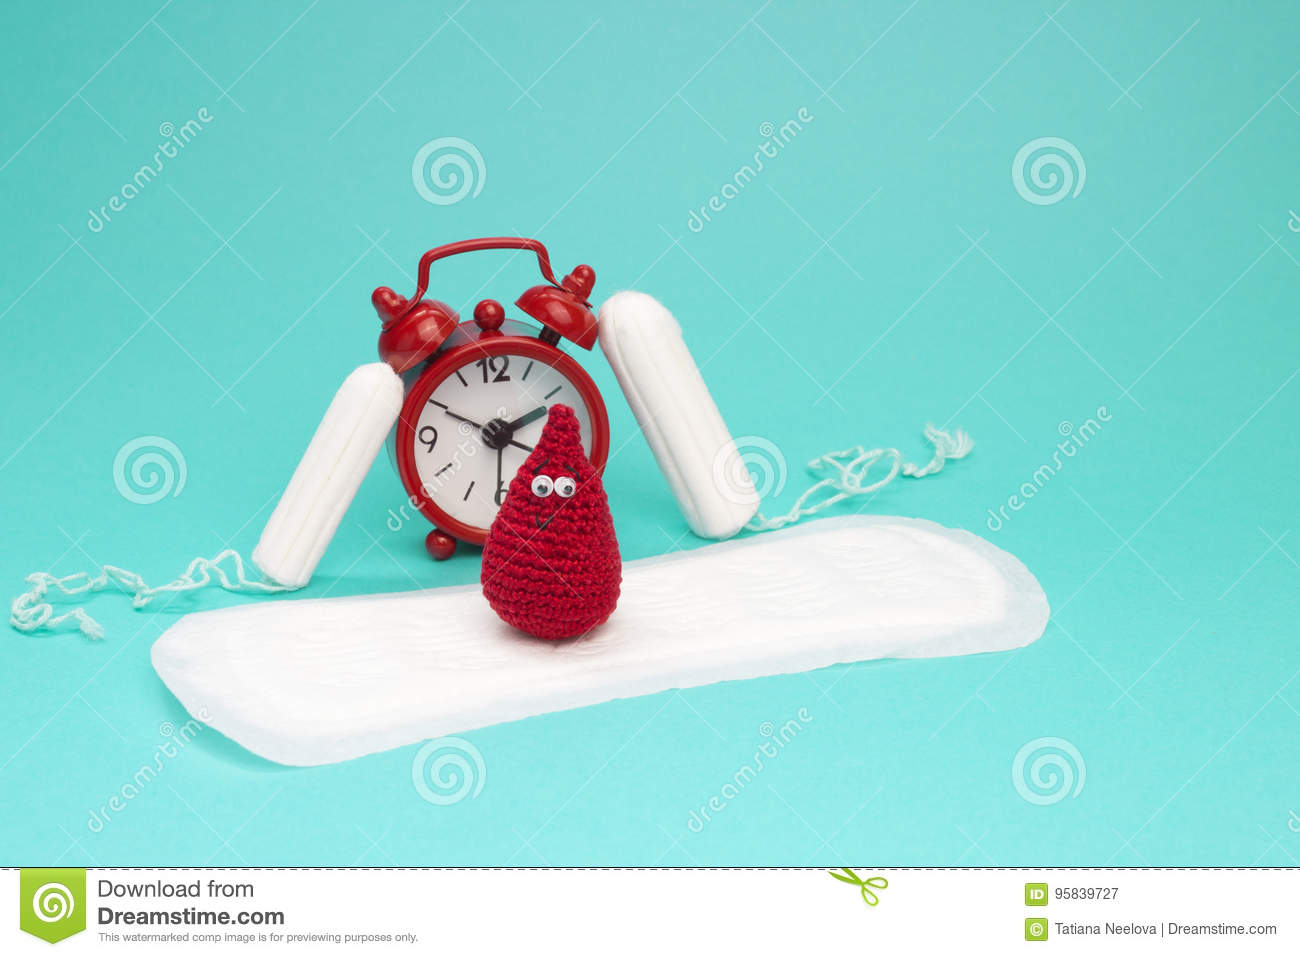 Red alarm clock, dreamy smile crochet blood drop, daily menstrual pad and tampons. Menstruation sanitary woman hygiene. Woman crit